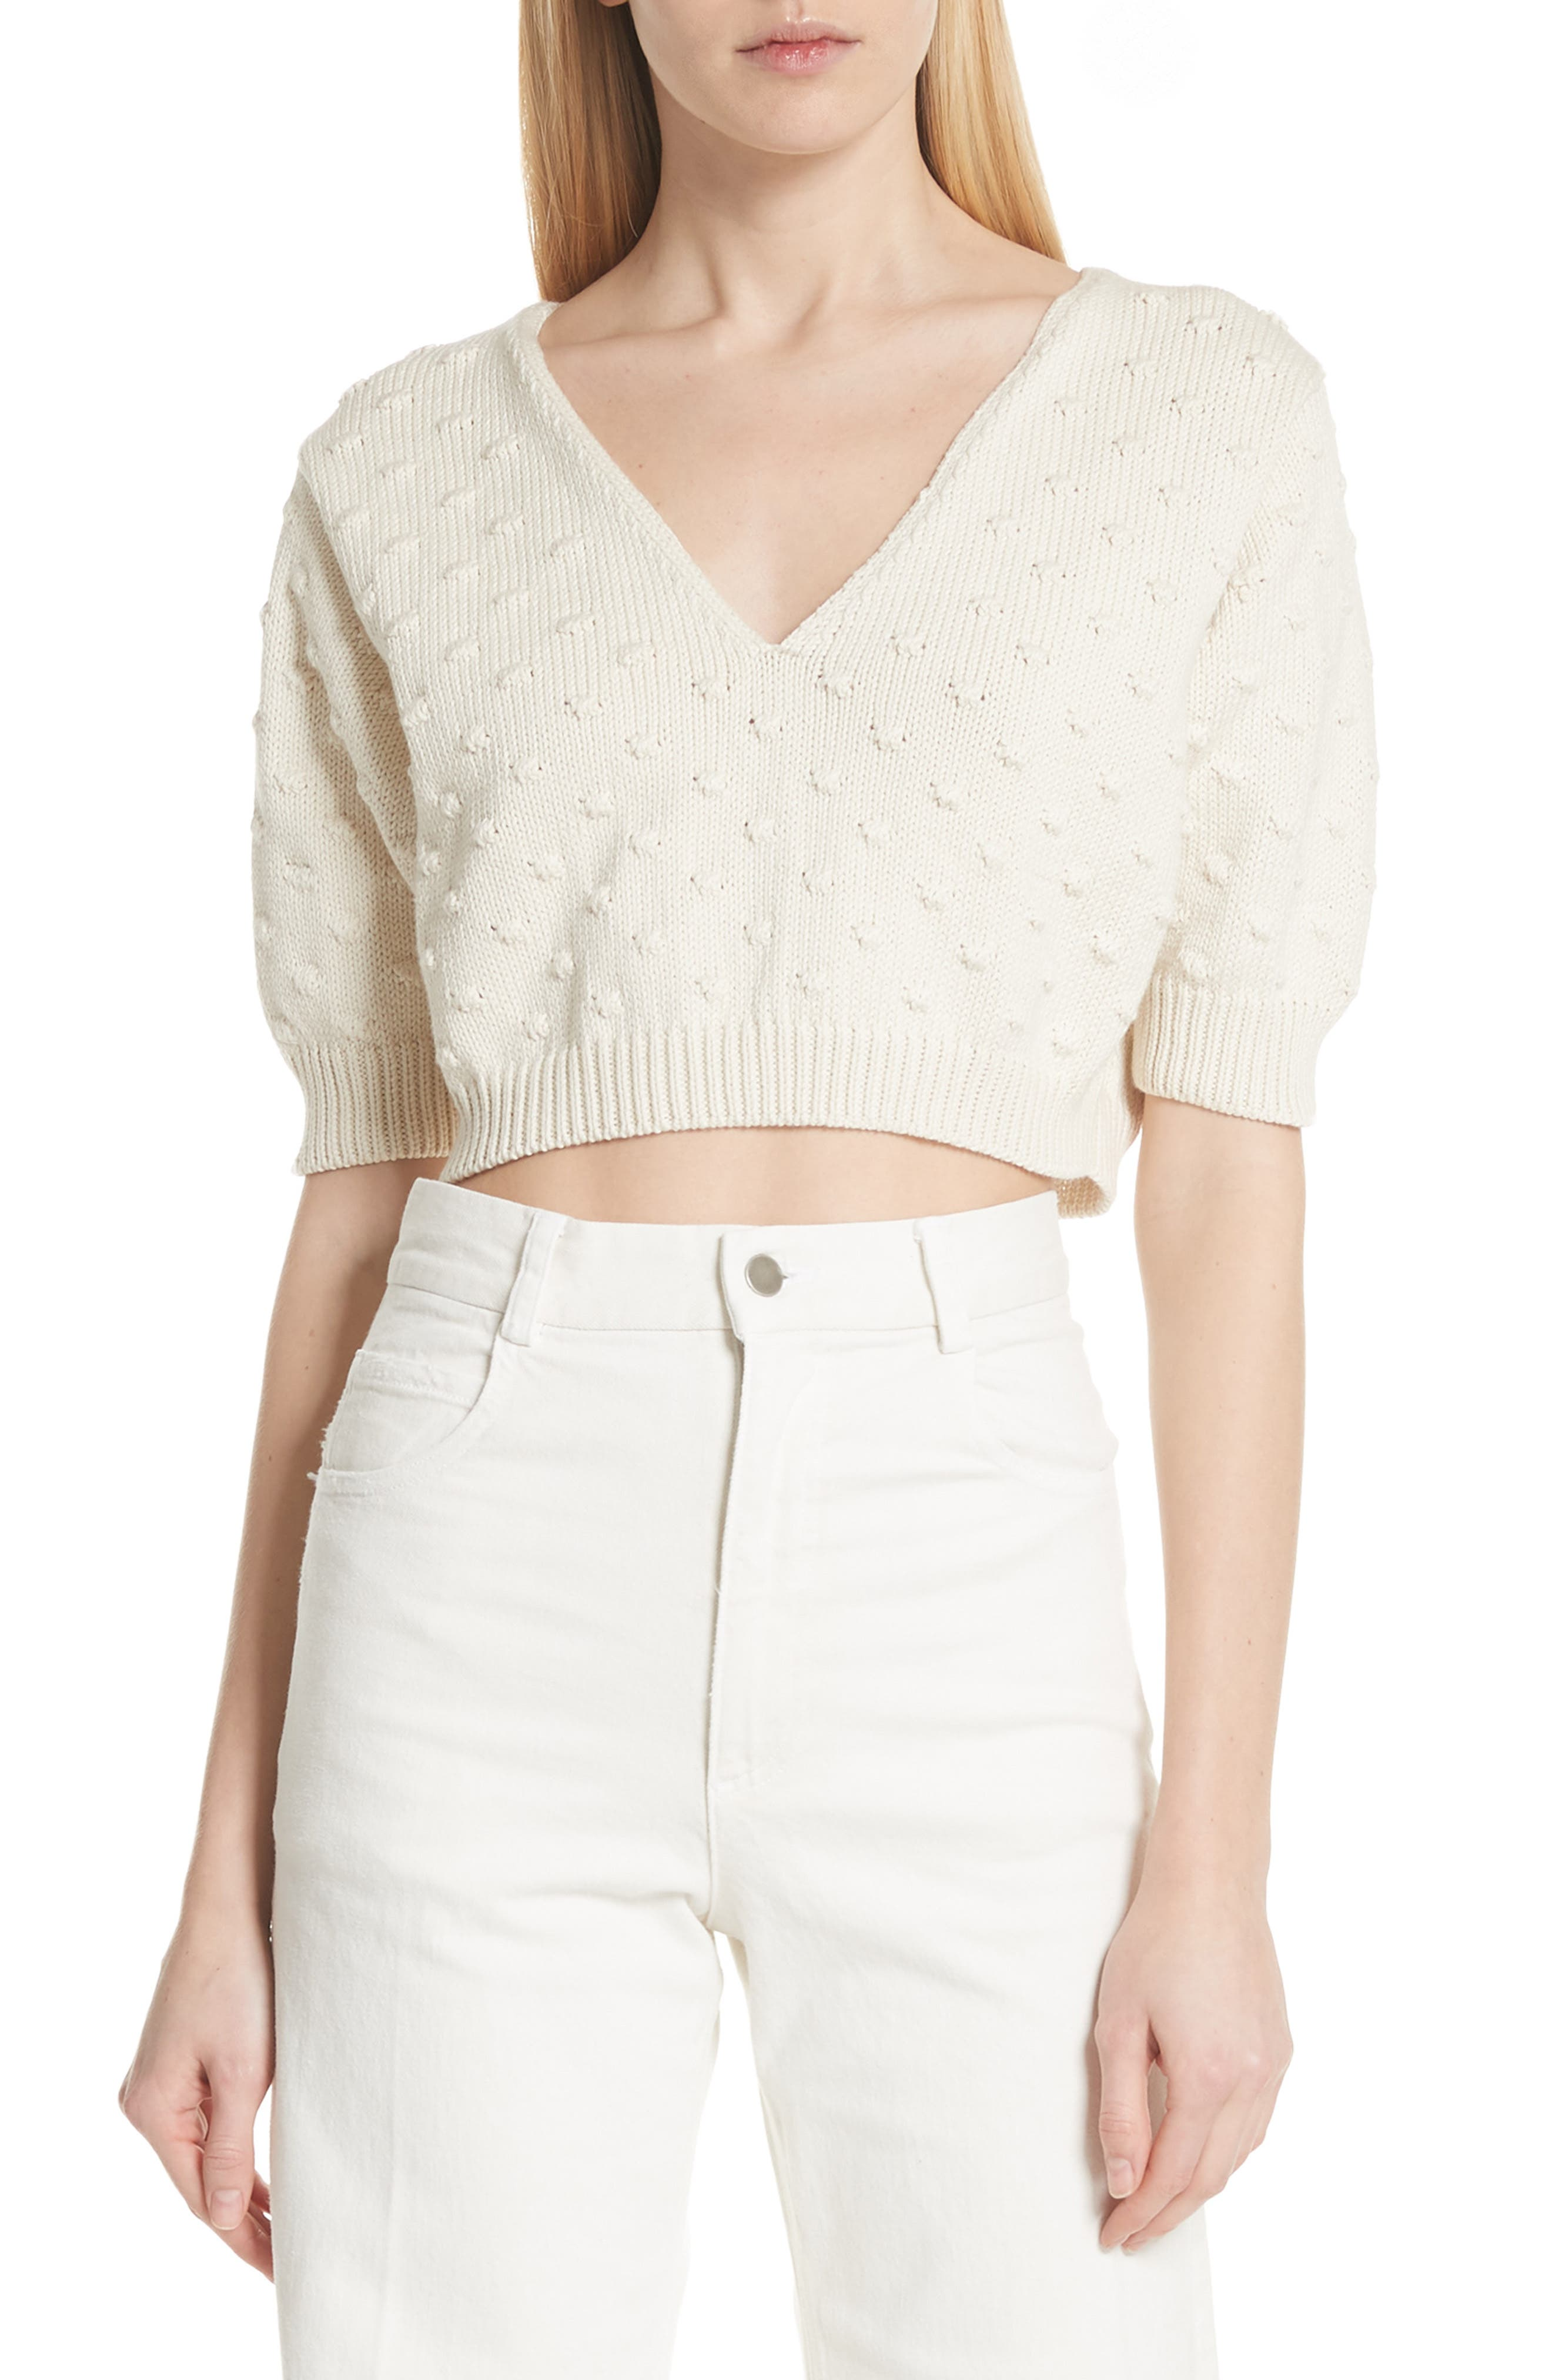 Ode Garbanzo Knit Crop Sweater,                         Main,                         color, Ivory